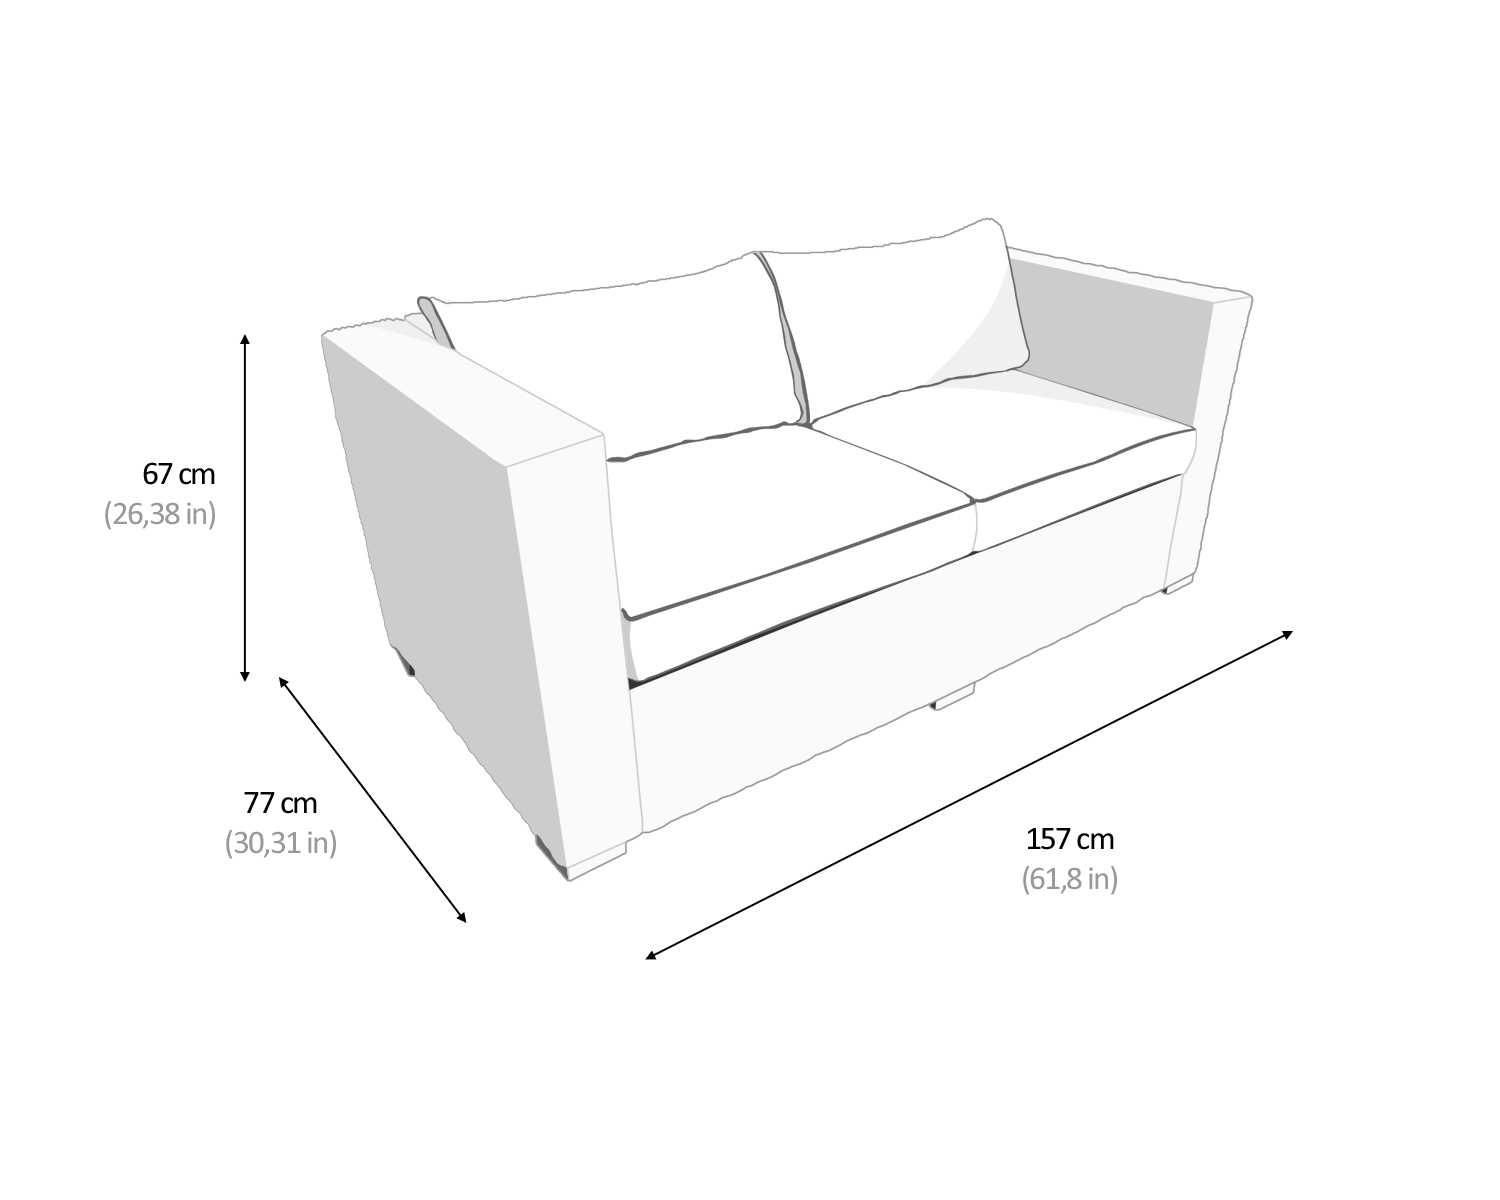 Dimensions of Ascot 2 Seat Sofa